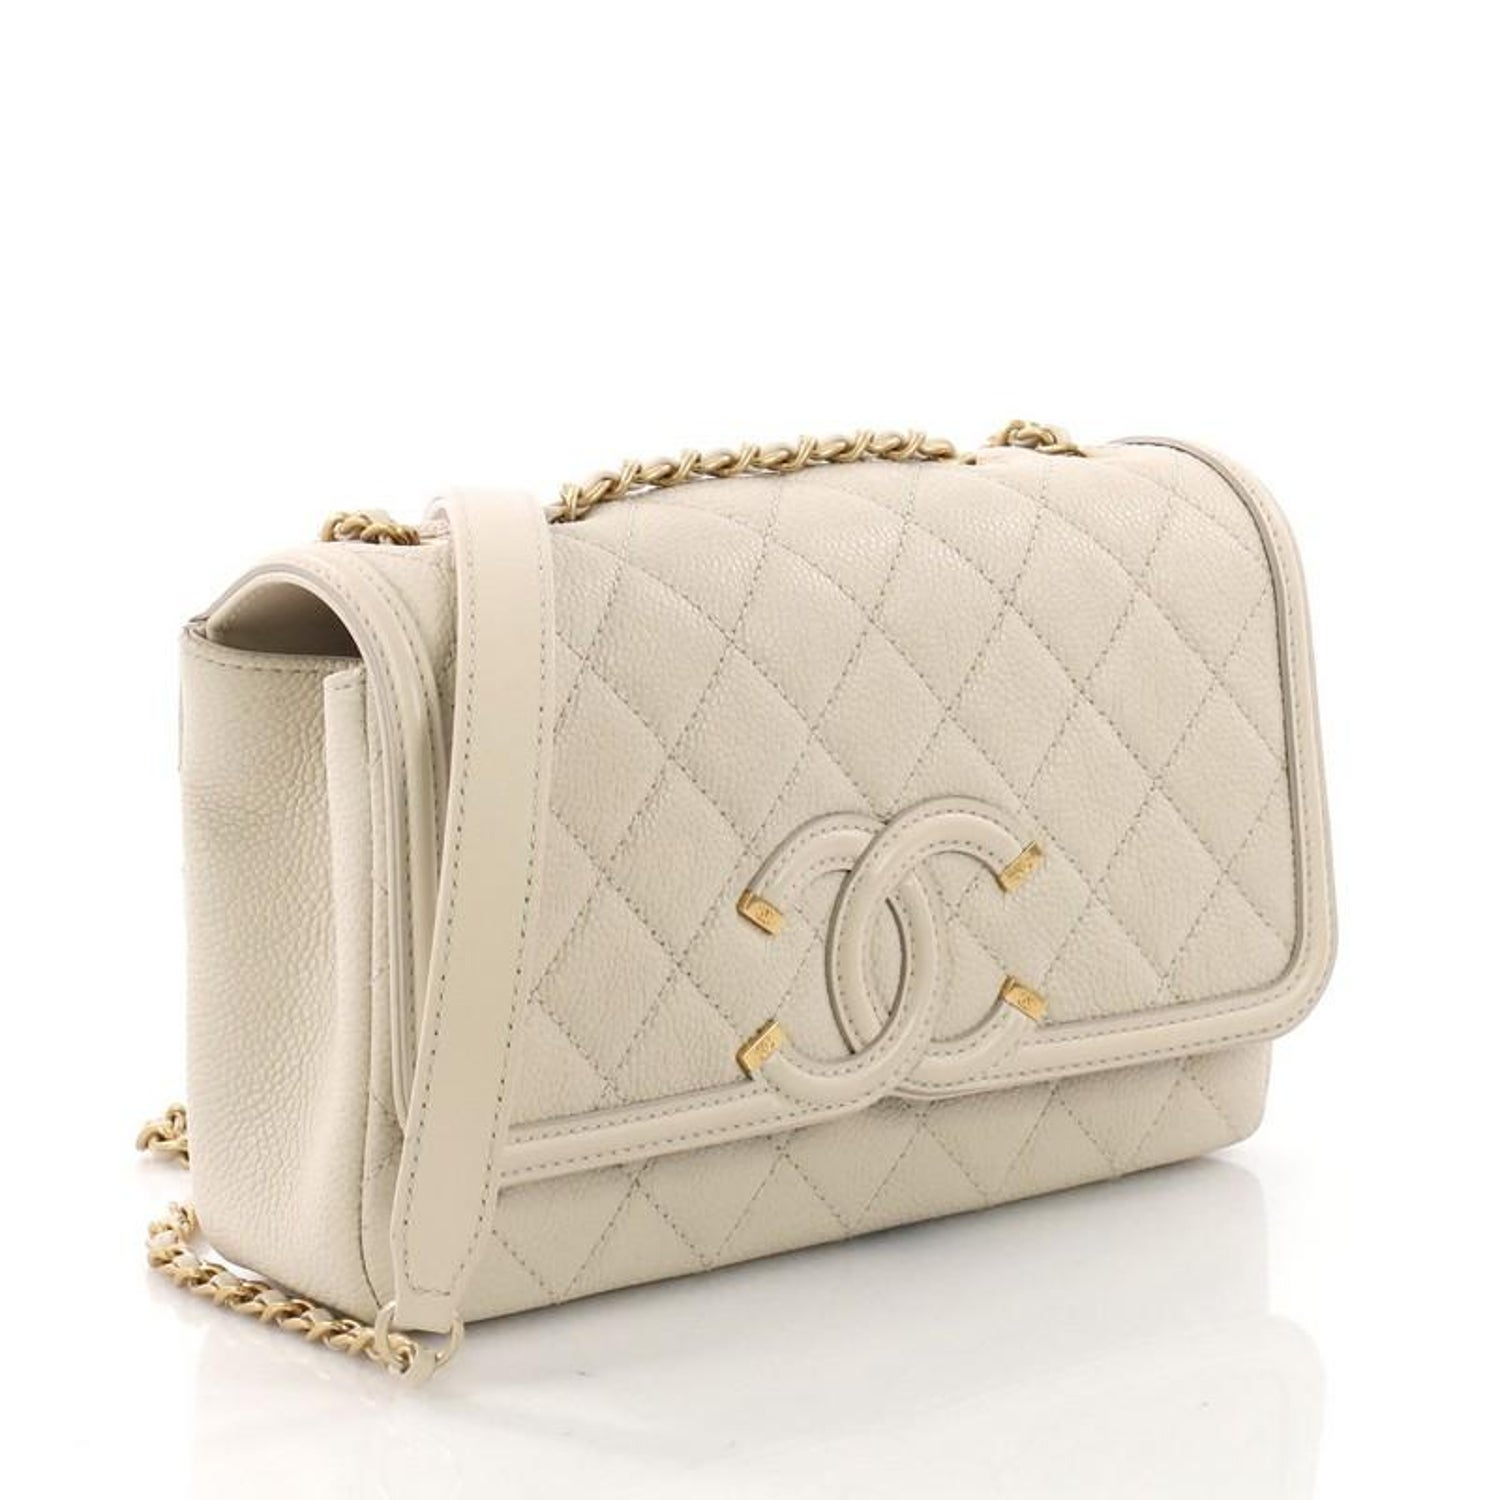 d2f8b8181195 Chanel Filigree Flap Bag Quilted Caviar Small at 1stdibs